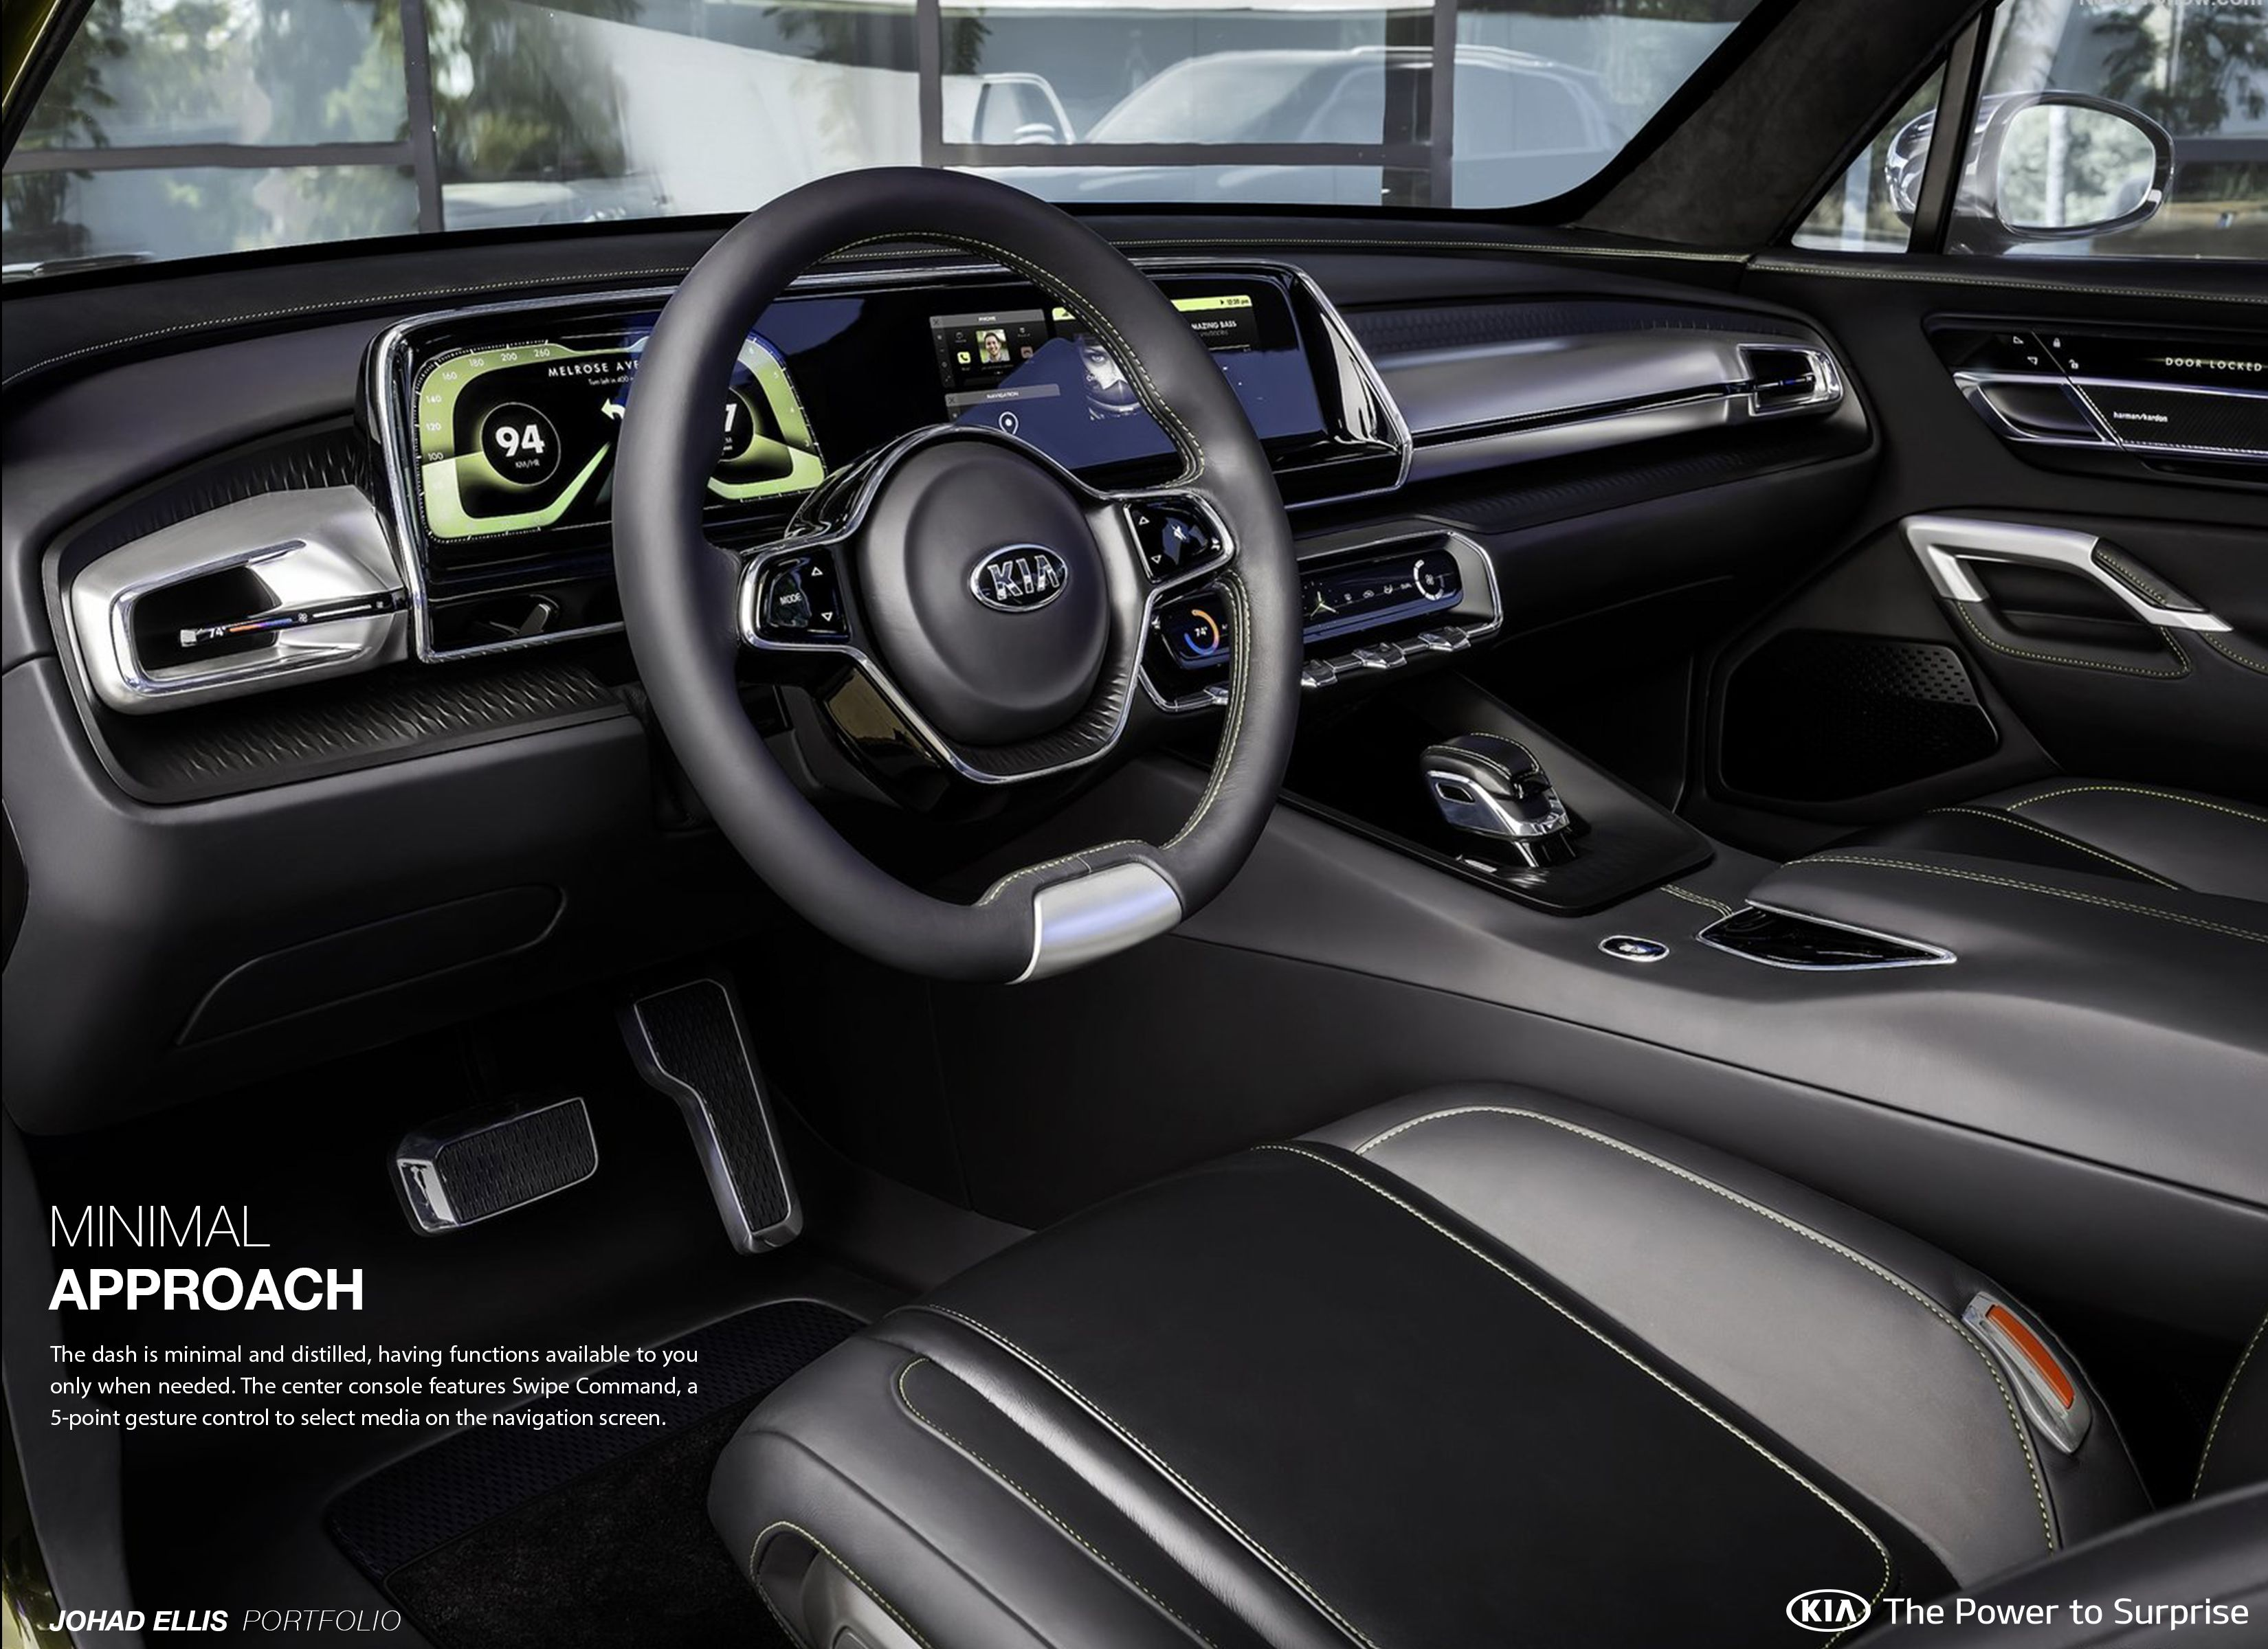 Design Lead For The Interior Of The Kia Telluride Concept Unveiled At The 2016 Naias In Detroit Car Interior Design Kia Car Interior